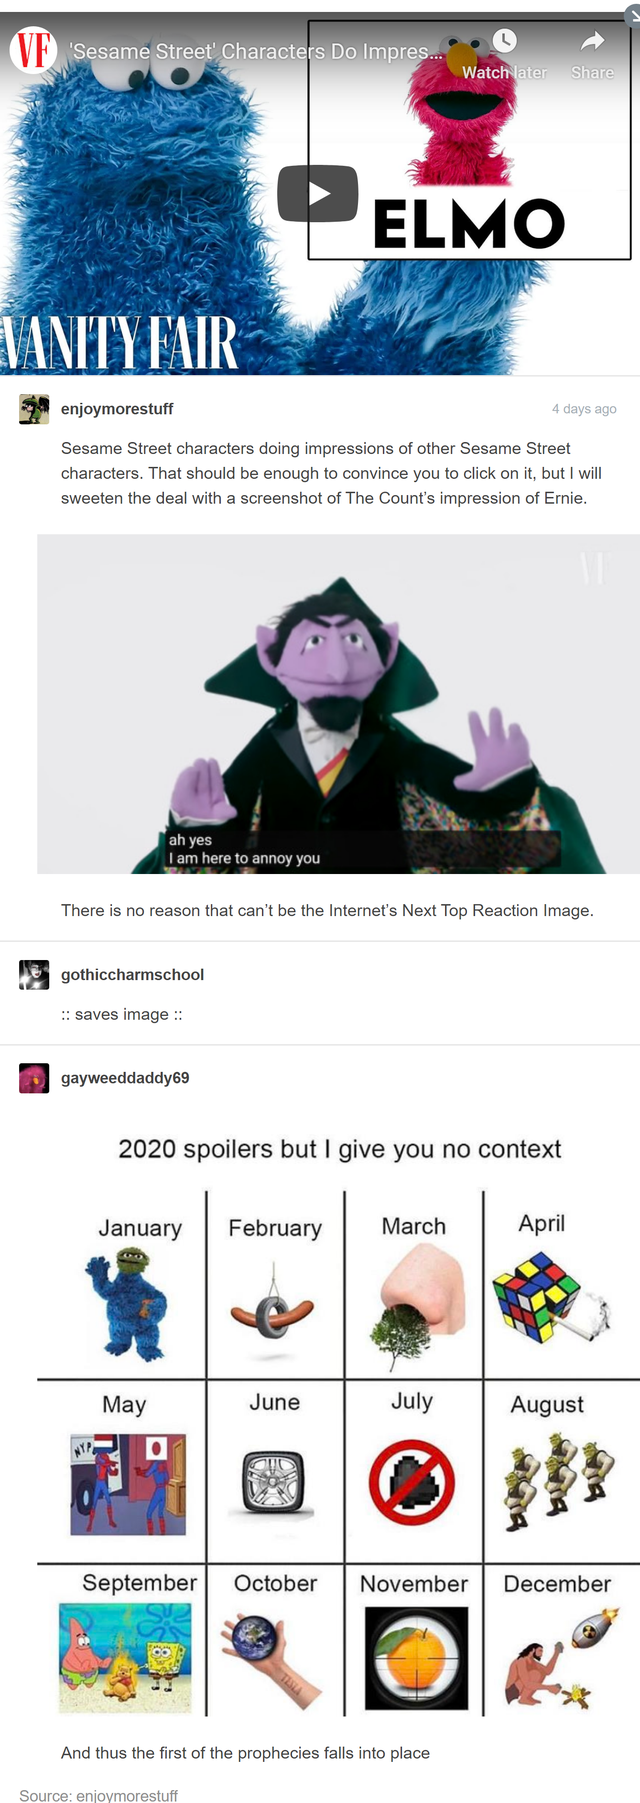 56 Top Tumblr Posts In 2020 Tumblr Funny Funny Memes Funny Posts